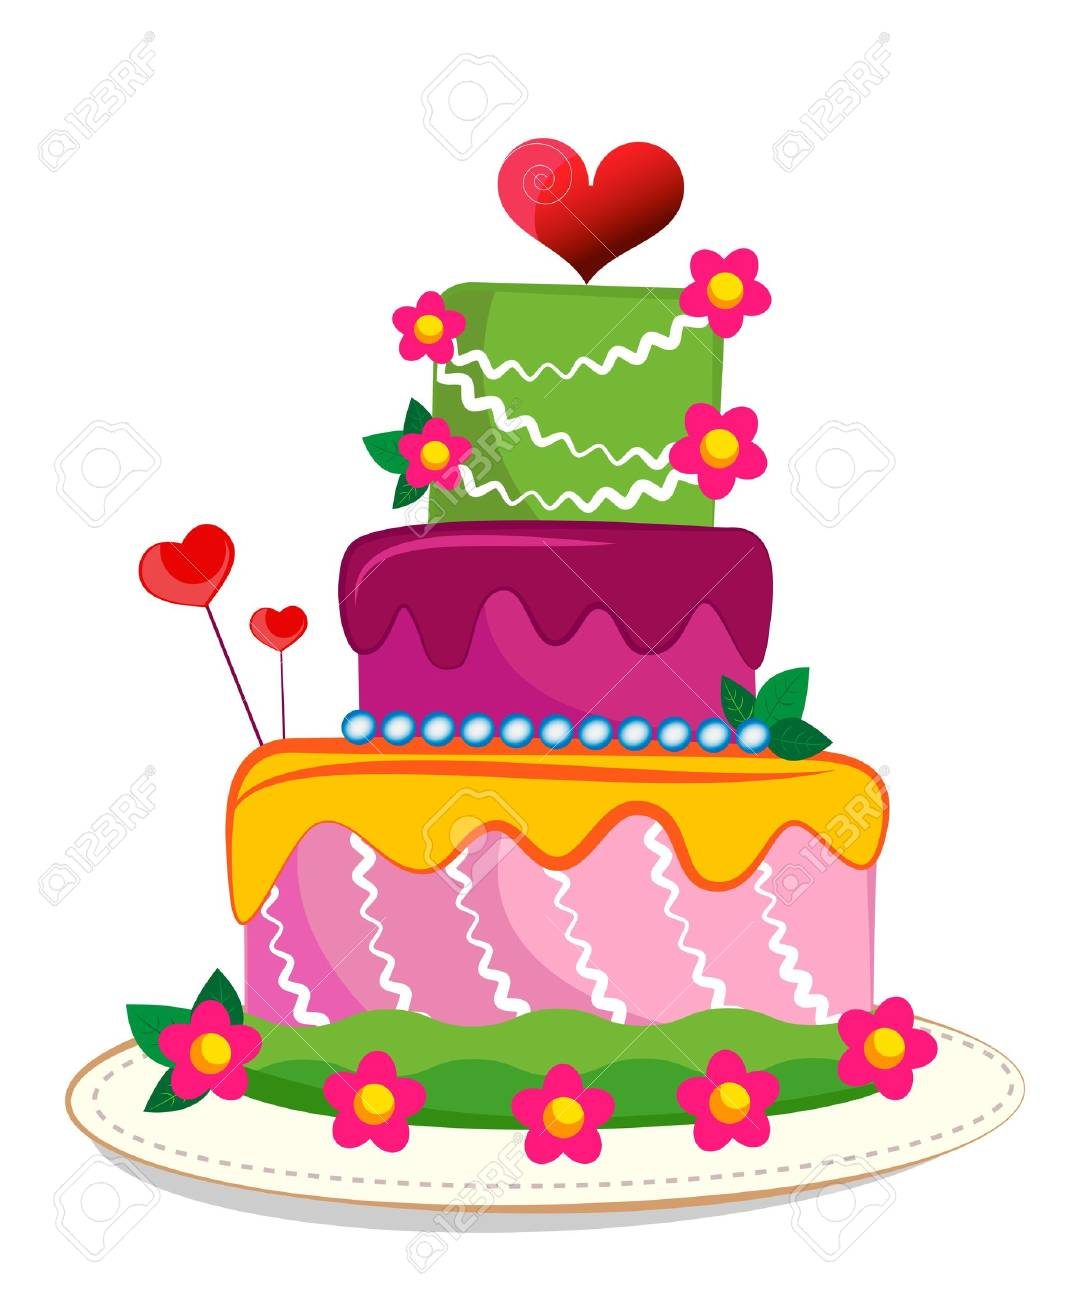 Tremendous Wedding Cake May Be Used On Wedding Birthday Party Or Funny Birthday Cards Online Elaedamsfinfo